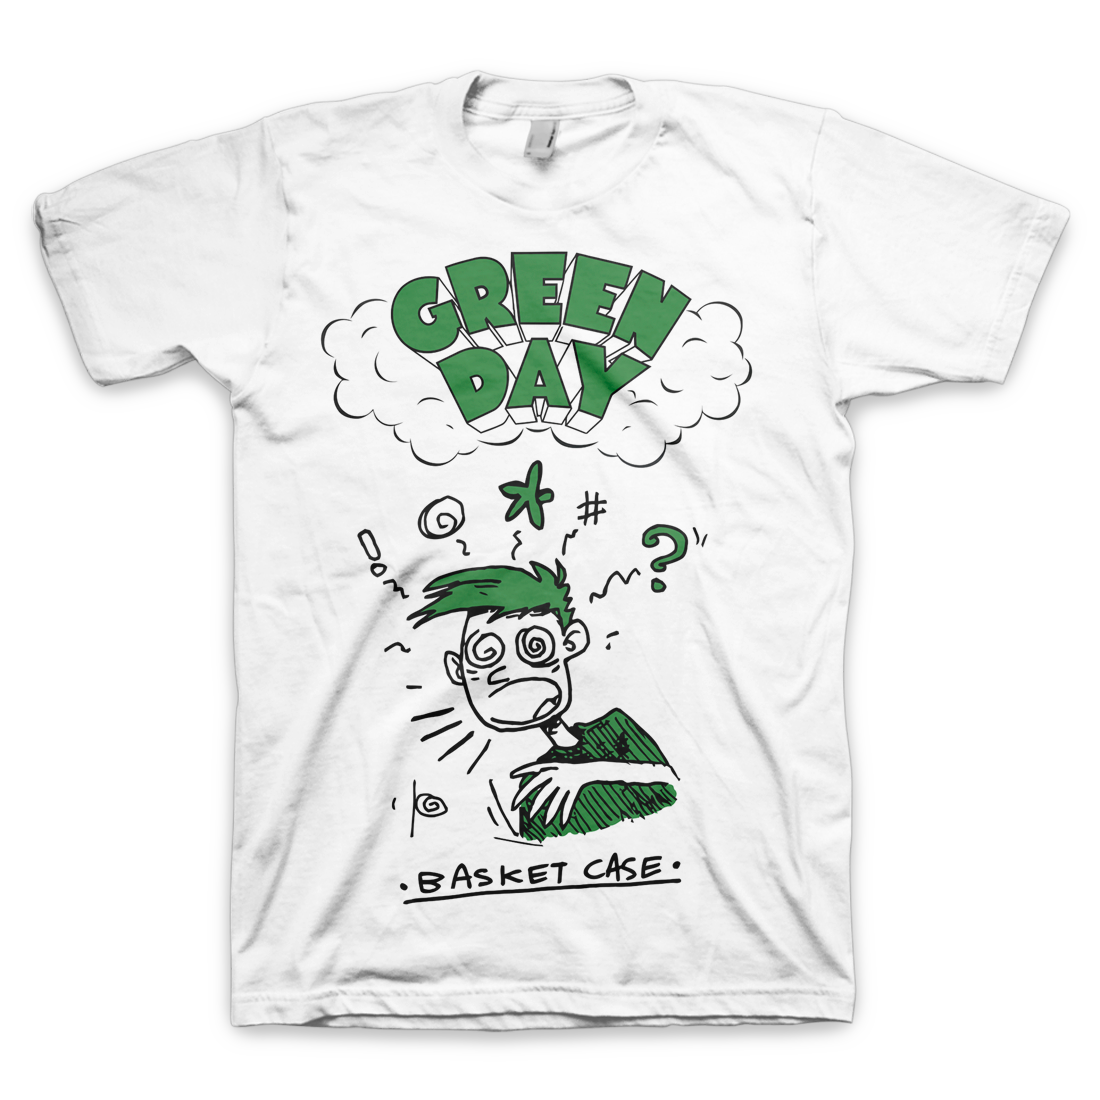 66fc822155a Basket Case T-Shirt – Green Day Store | Green day | T shirt, Green ...